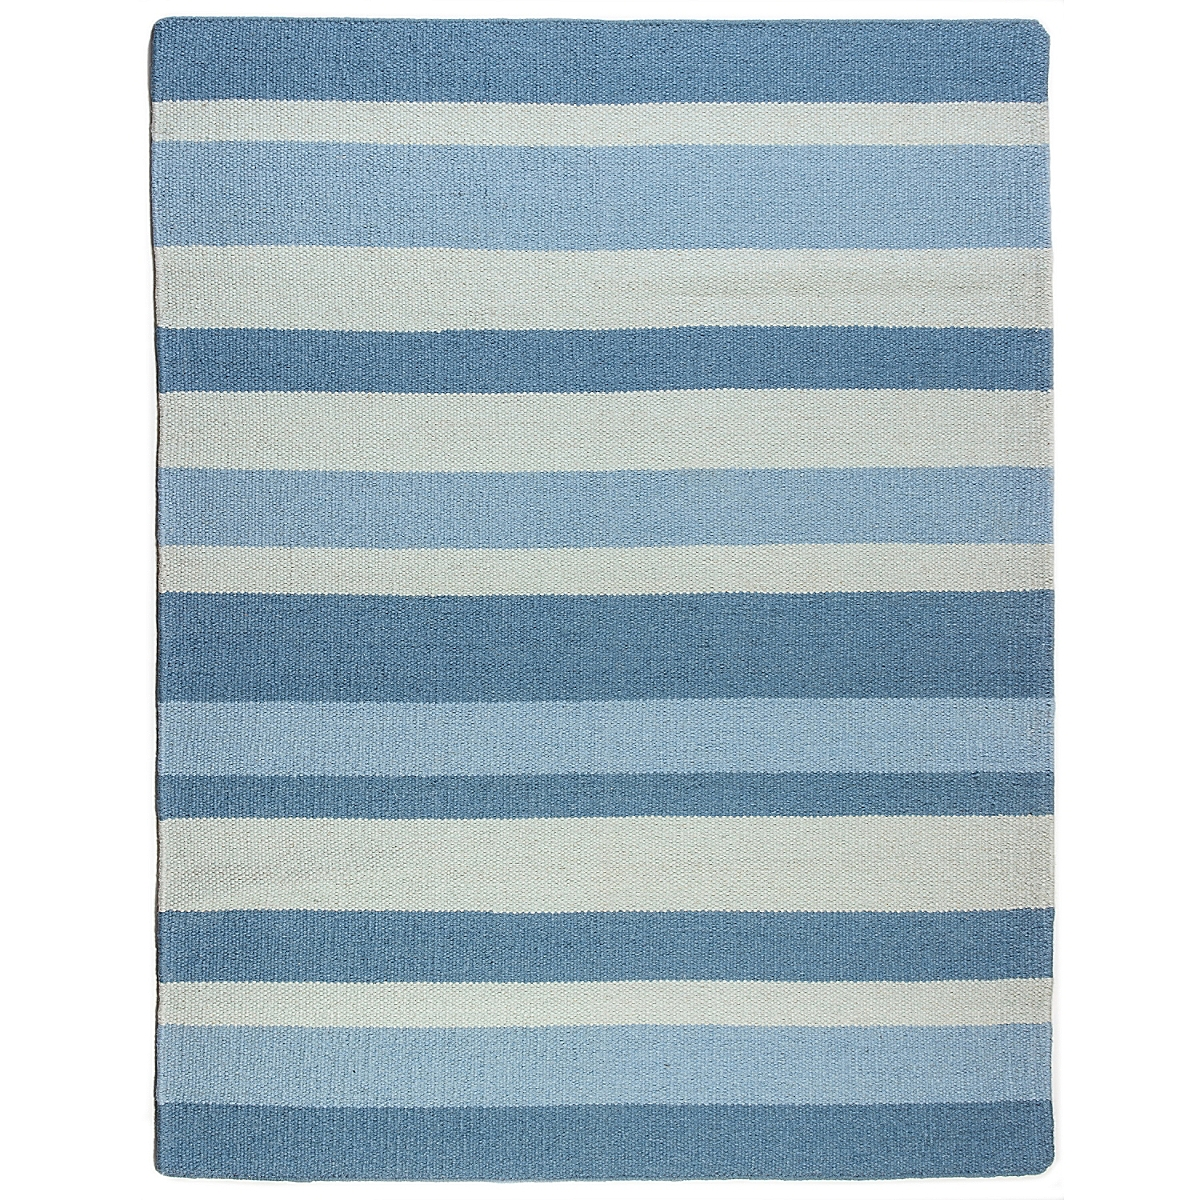 Jones Point Wool Berber Striped Rug